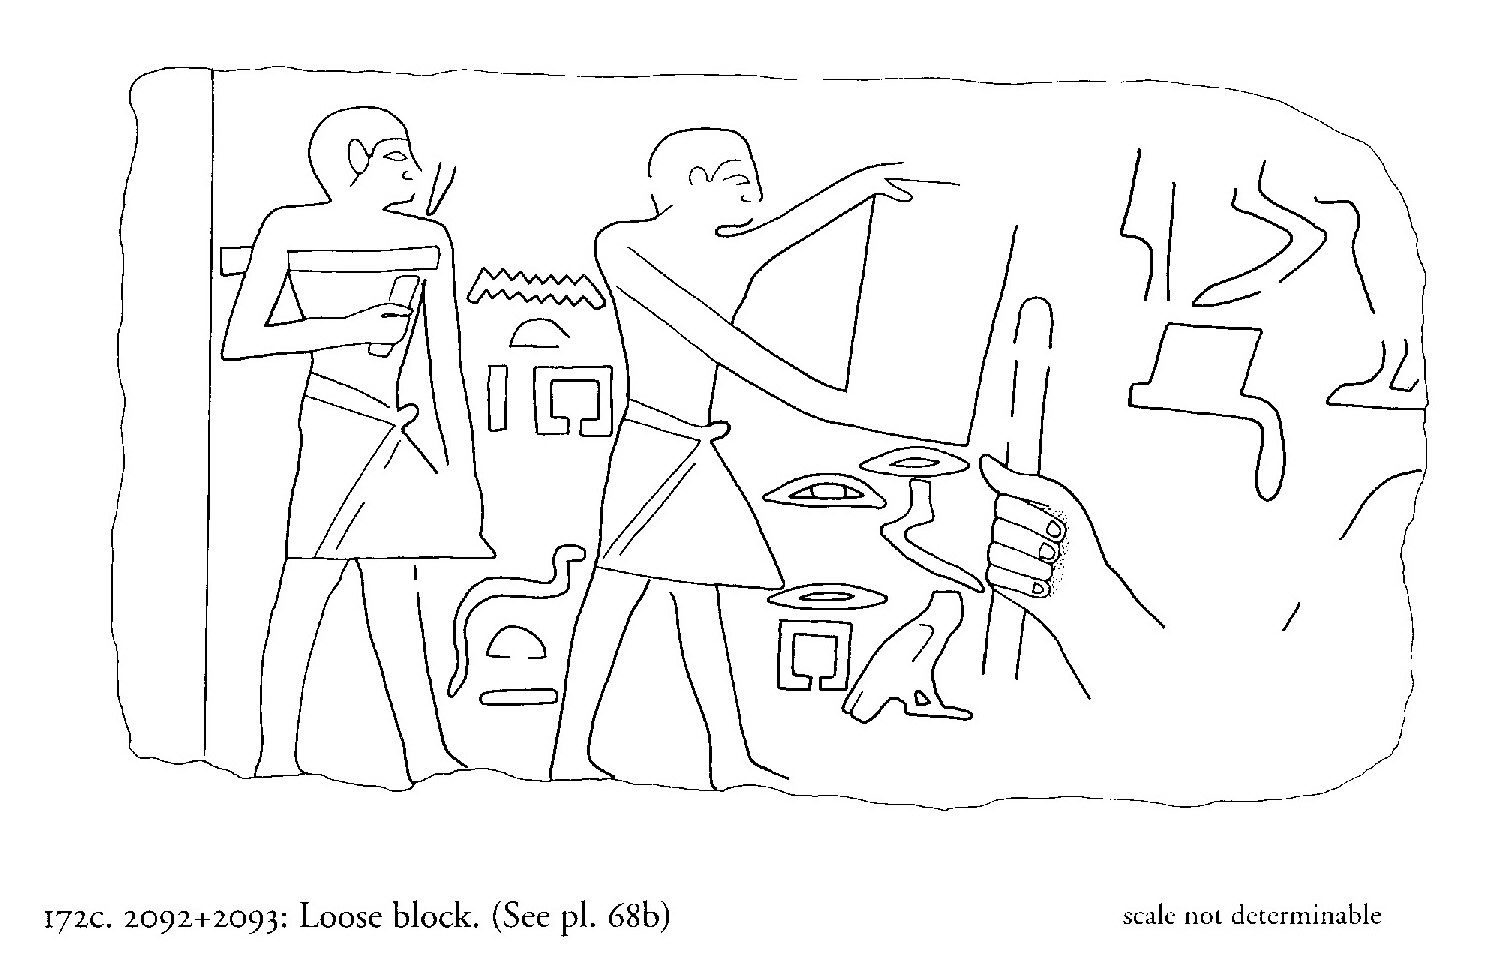 Drawings: G 2092+2093: relief from loose block